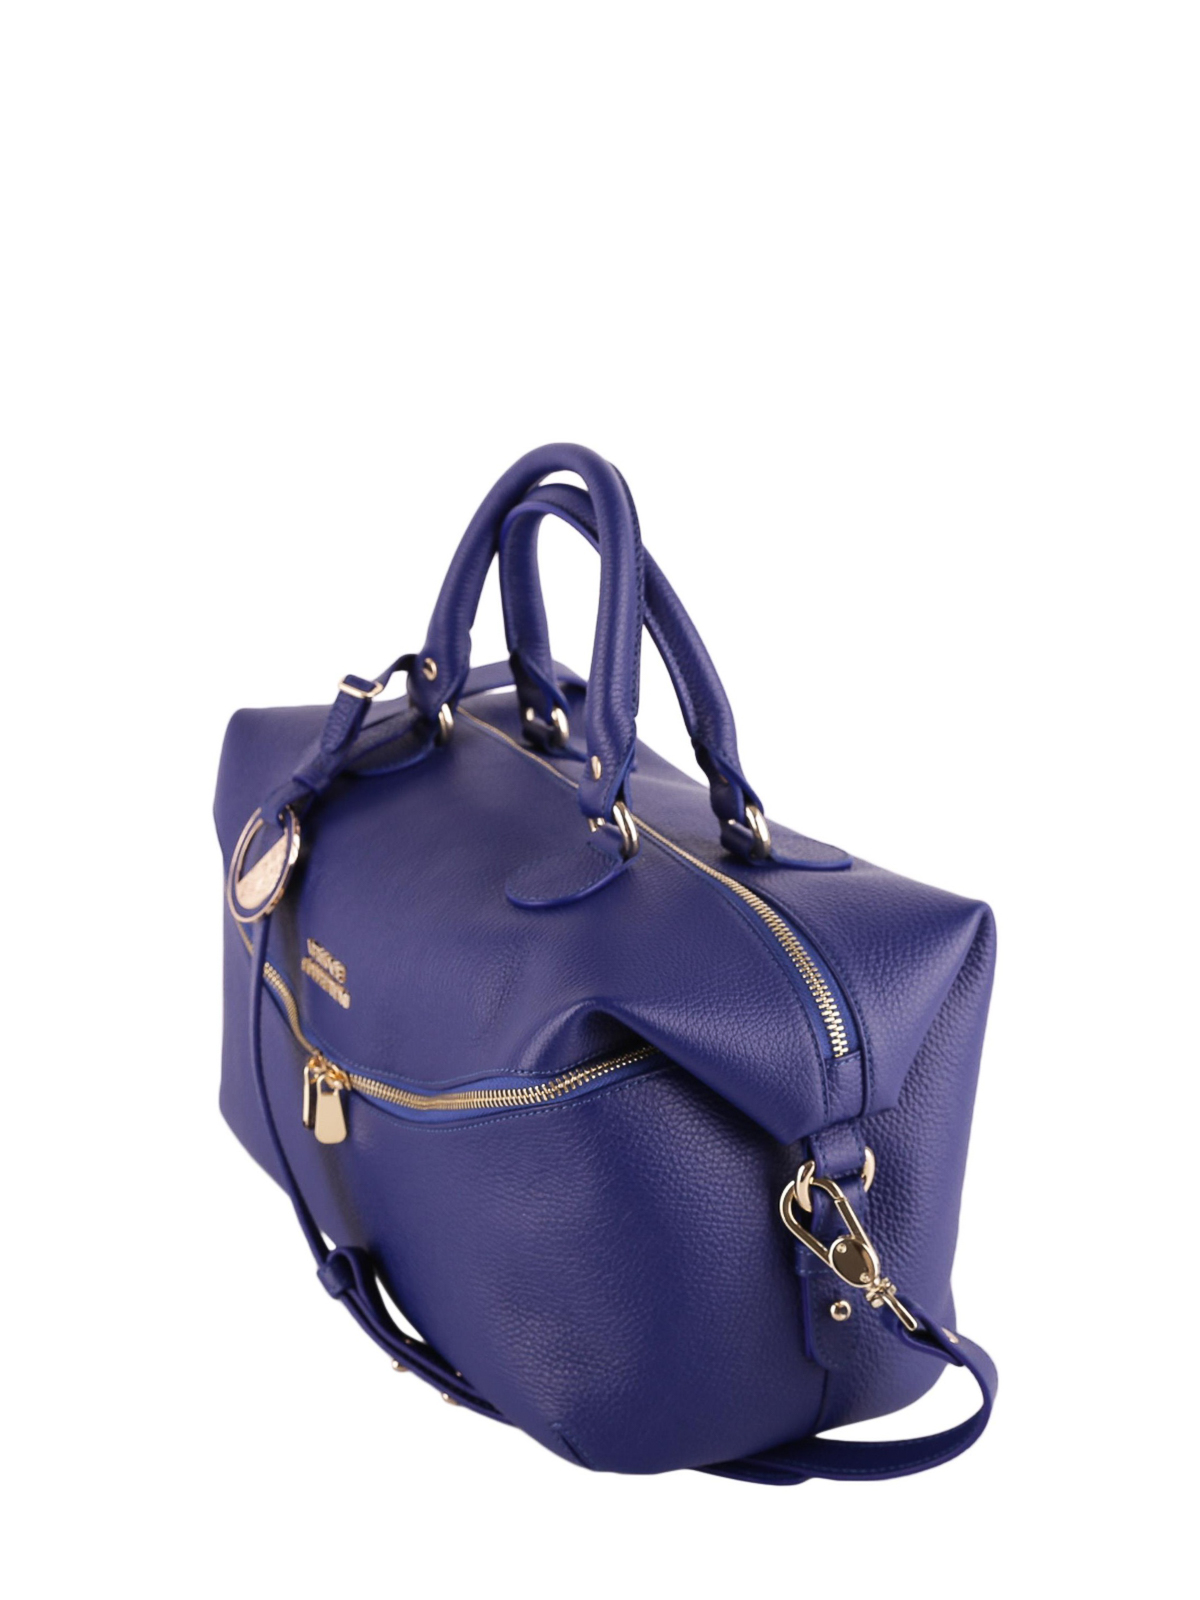 60d150eb7394 VERSACE COLLECTION  bowling bags online - Blue hammered leather bowling bag